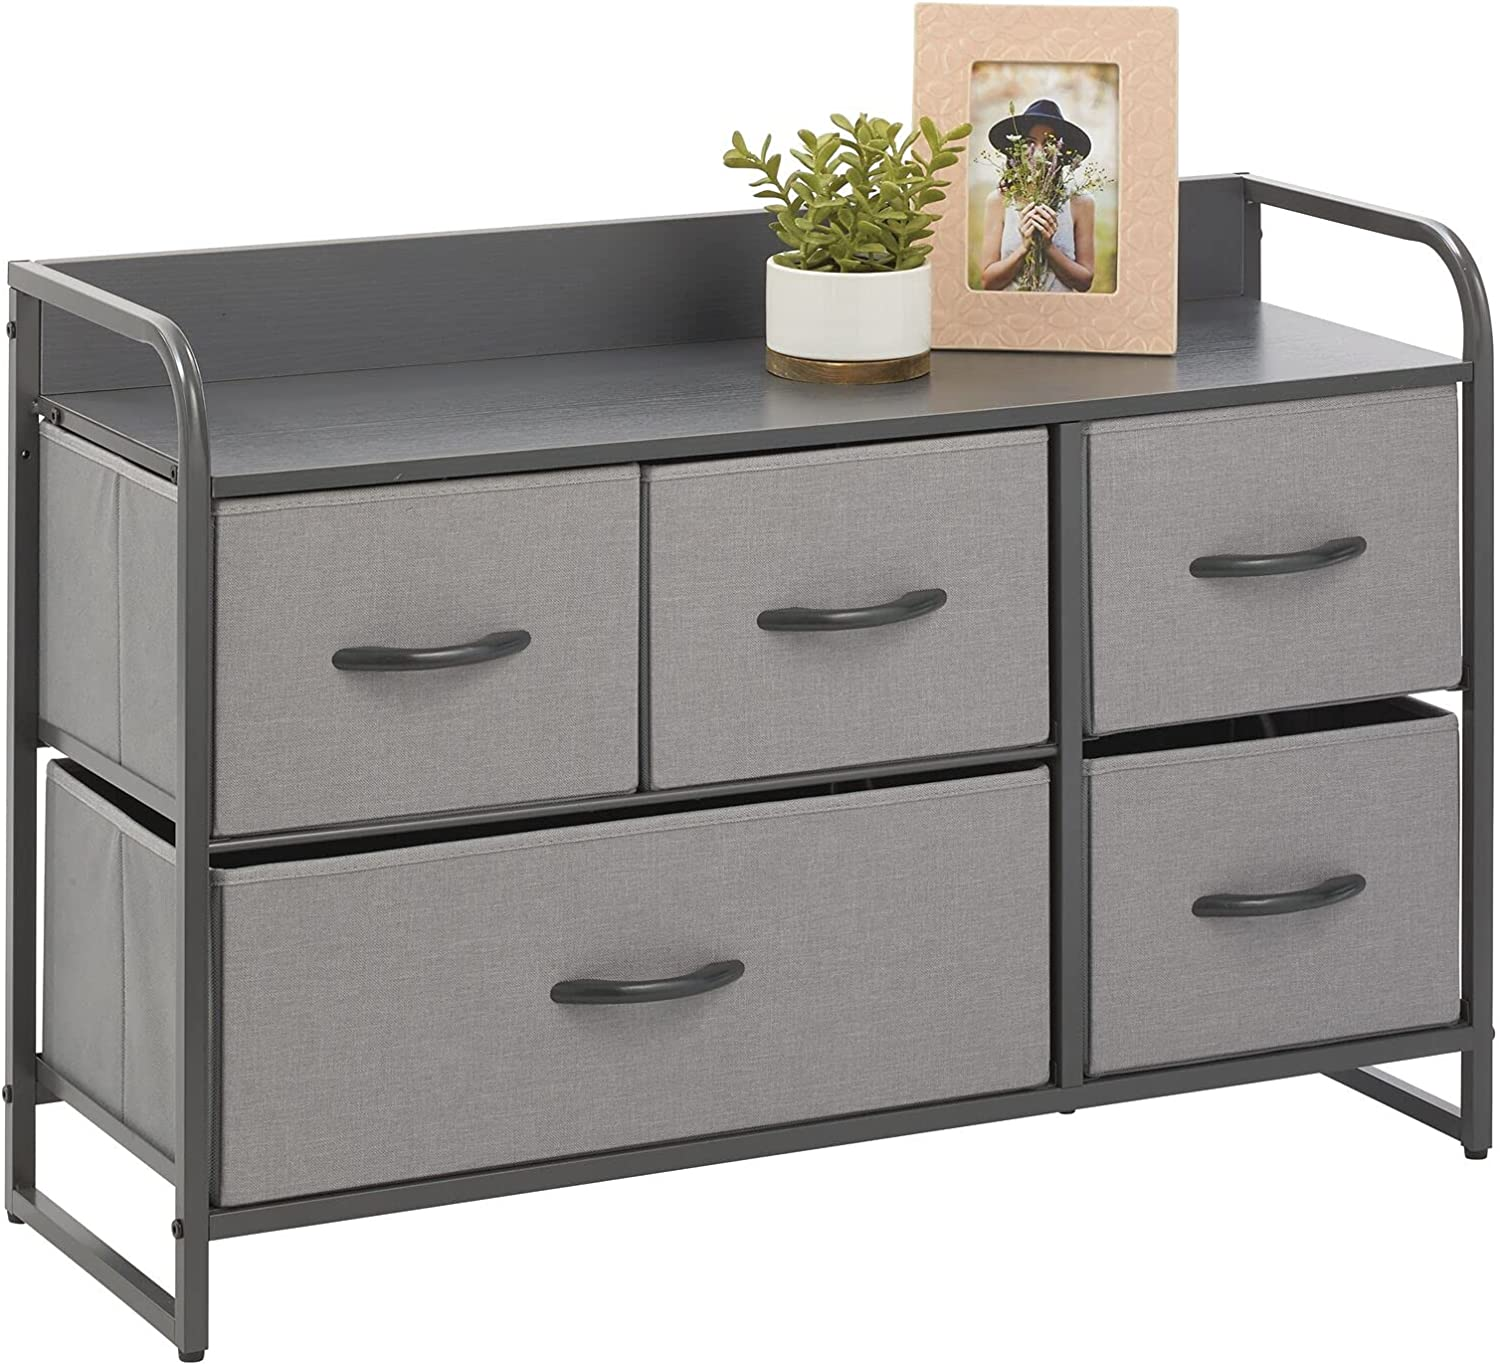 National uniform free shipping mDesign Wide Dresser Storage Max 40% OFF Chest Wood Sturdy Top Frame Steel